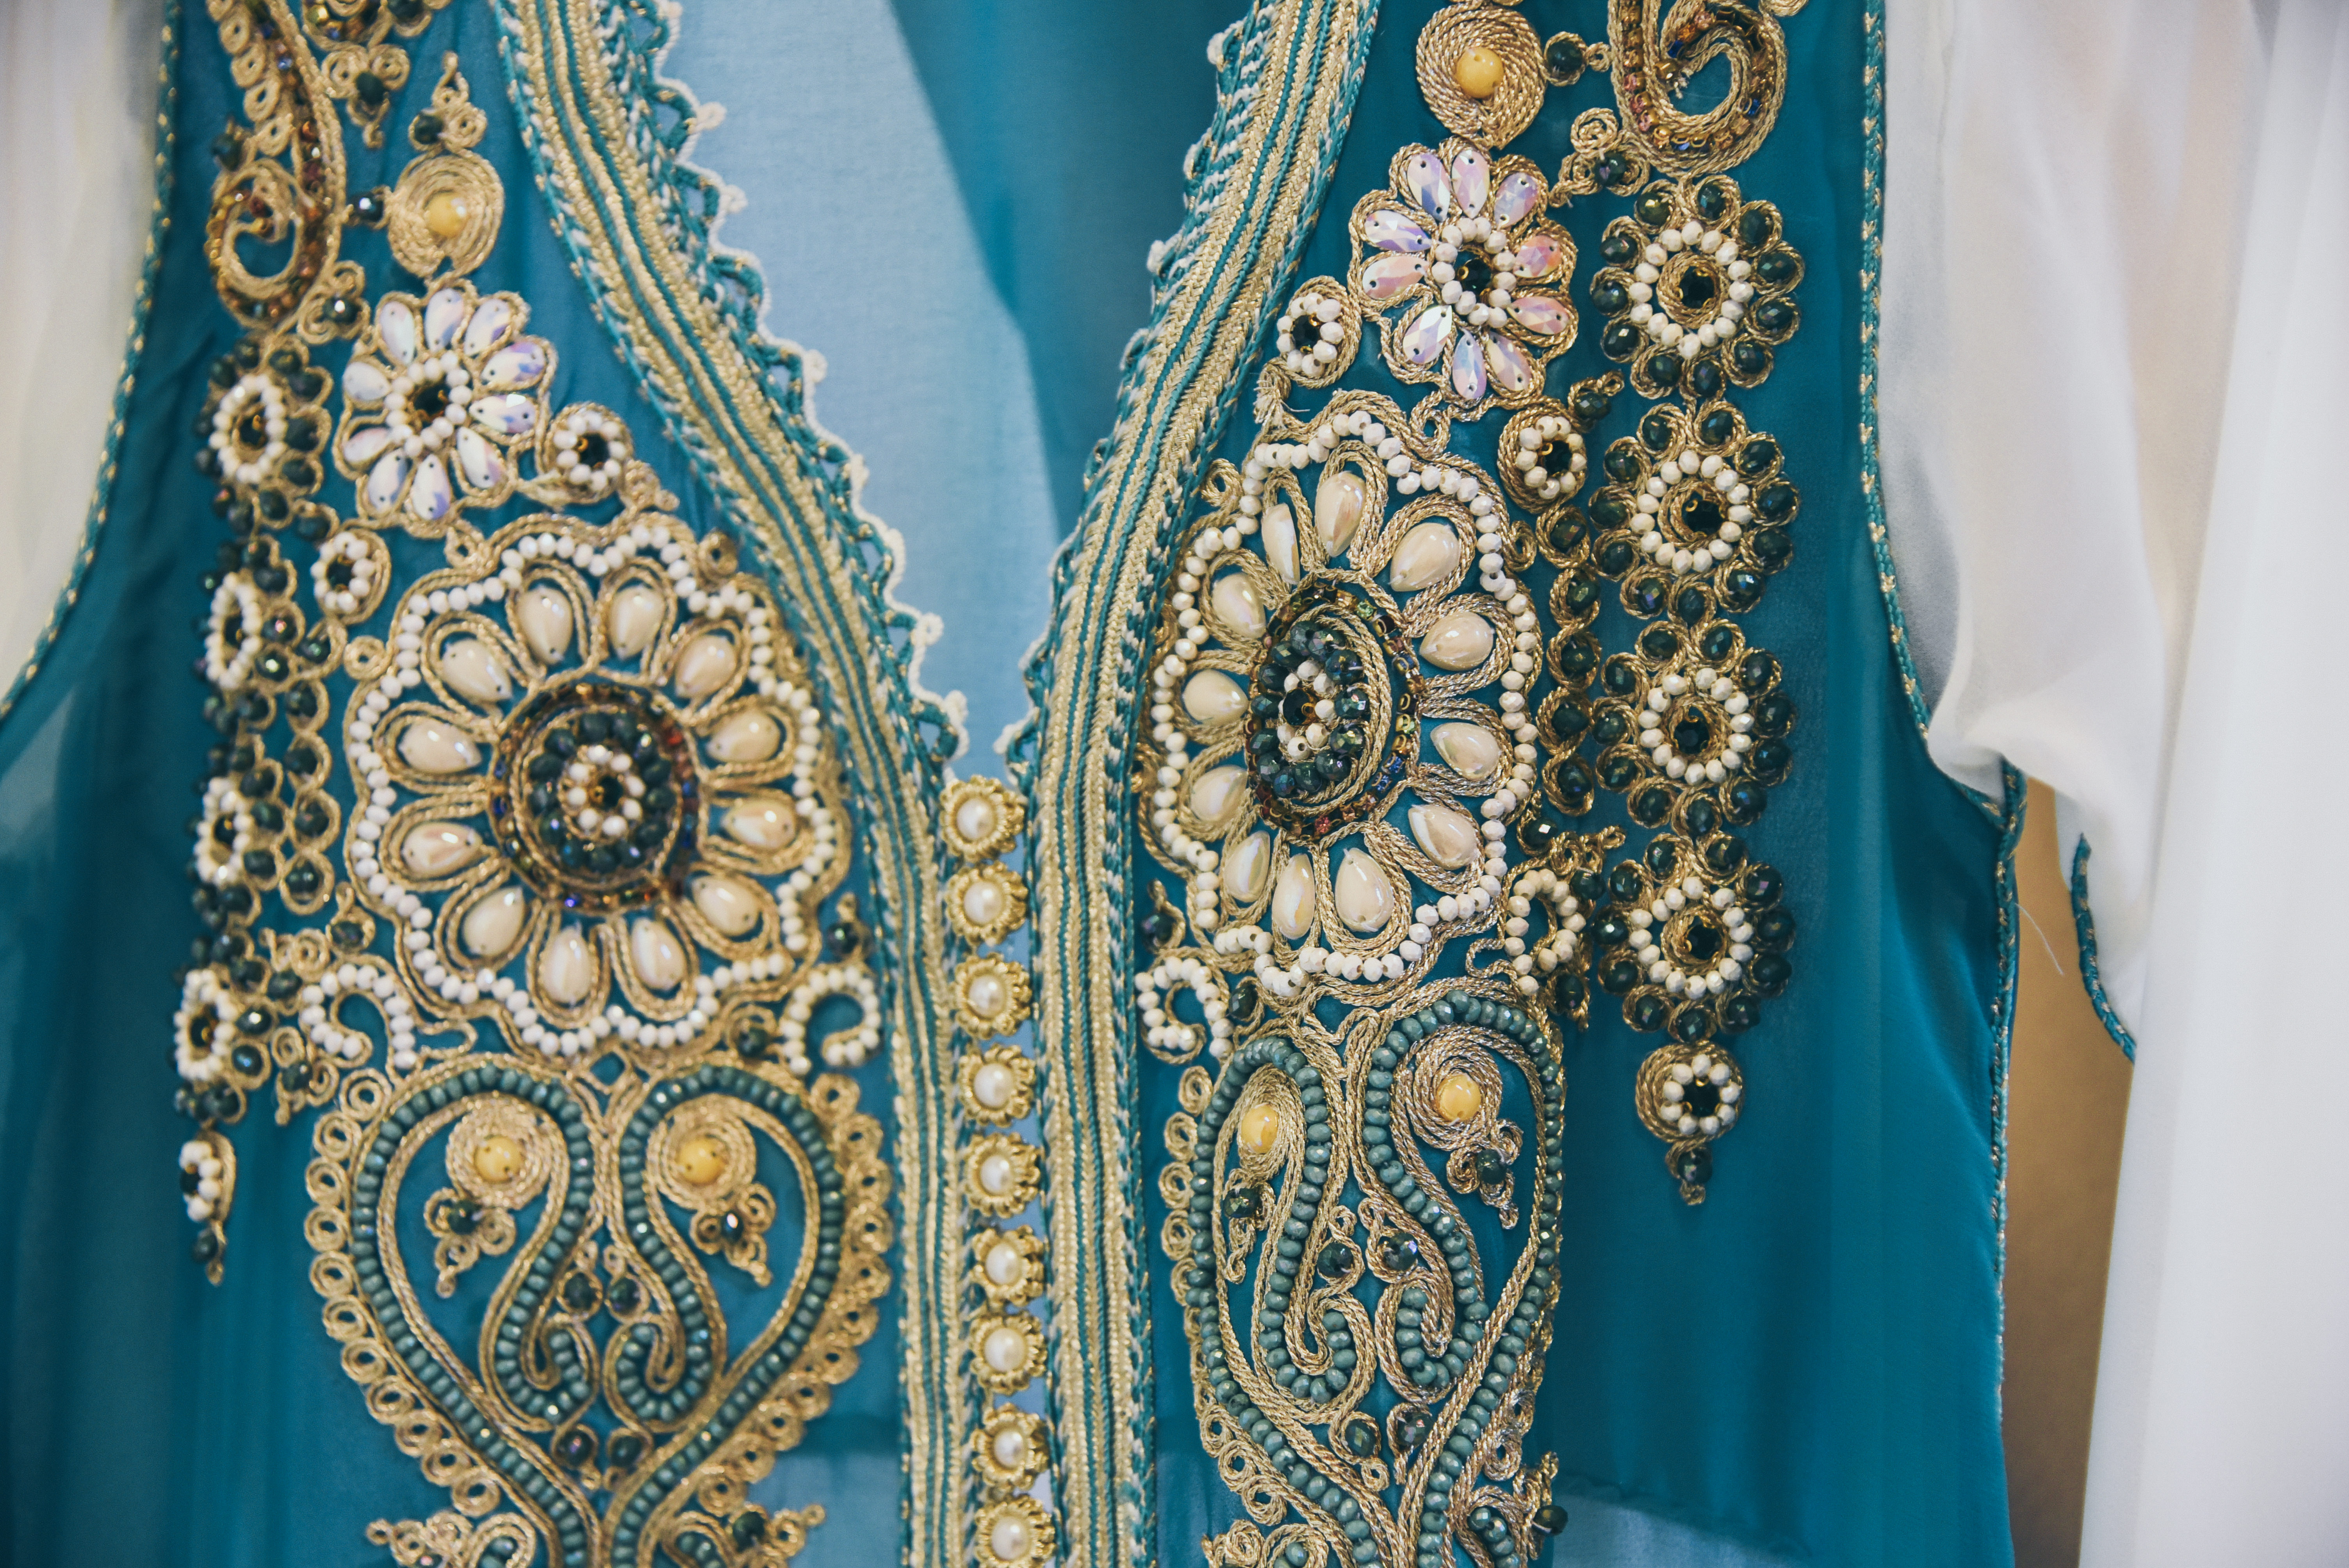 groom's moroccan wedding outfit in teal and gold